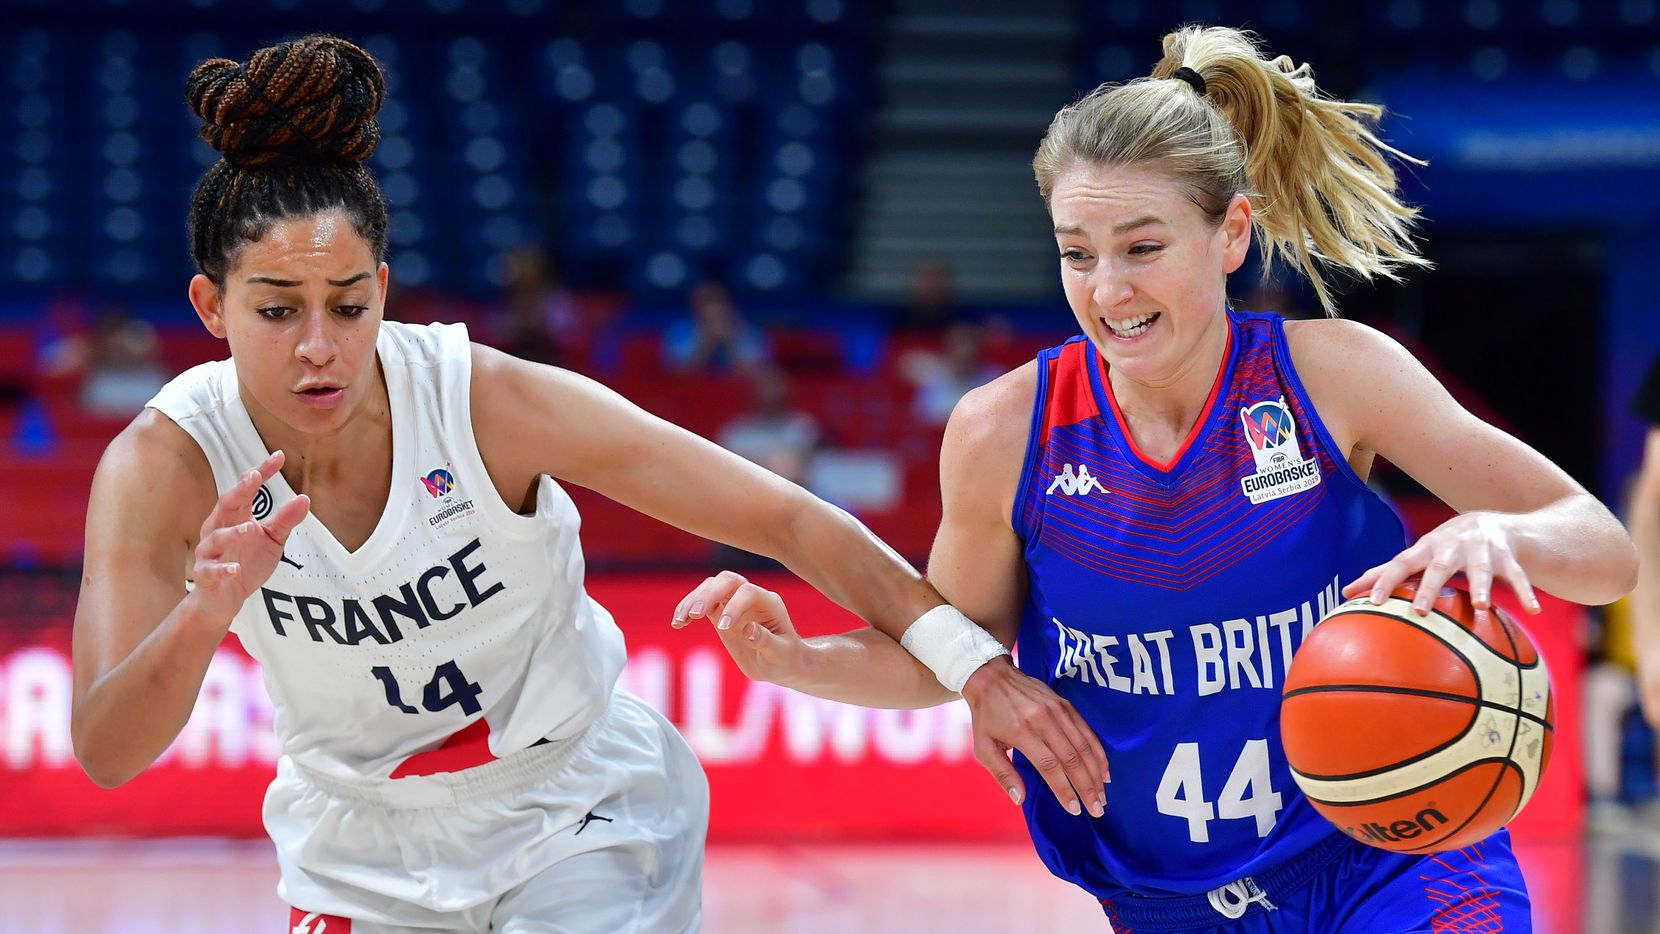 Great Britain's Karlie Samuelson vies with Frances Bria Hartley during the Women's Eurobasket 2019 semi-final basketball match between France and Great Britain on July 6, 2019, in Belgrade. (Photo by ANDREJ ISAKOVIC / AFP)        (Photo credit should read ANDREJ ISAKOVIC/AFP/Getty Images)